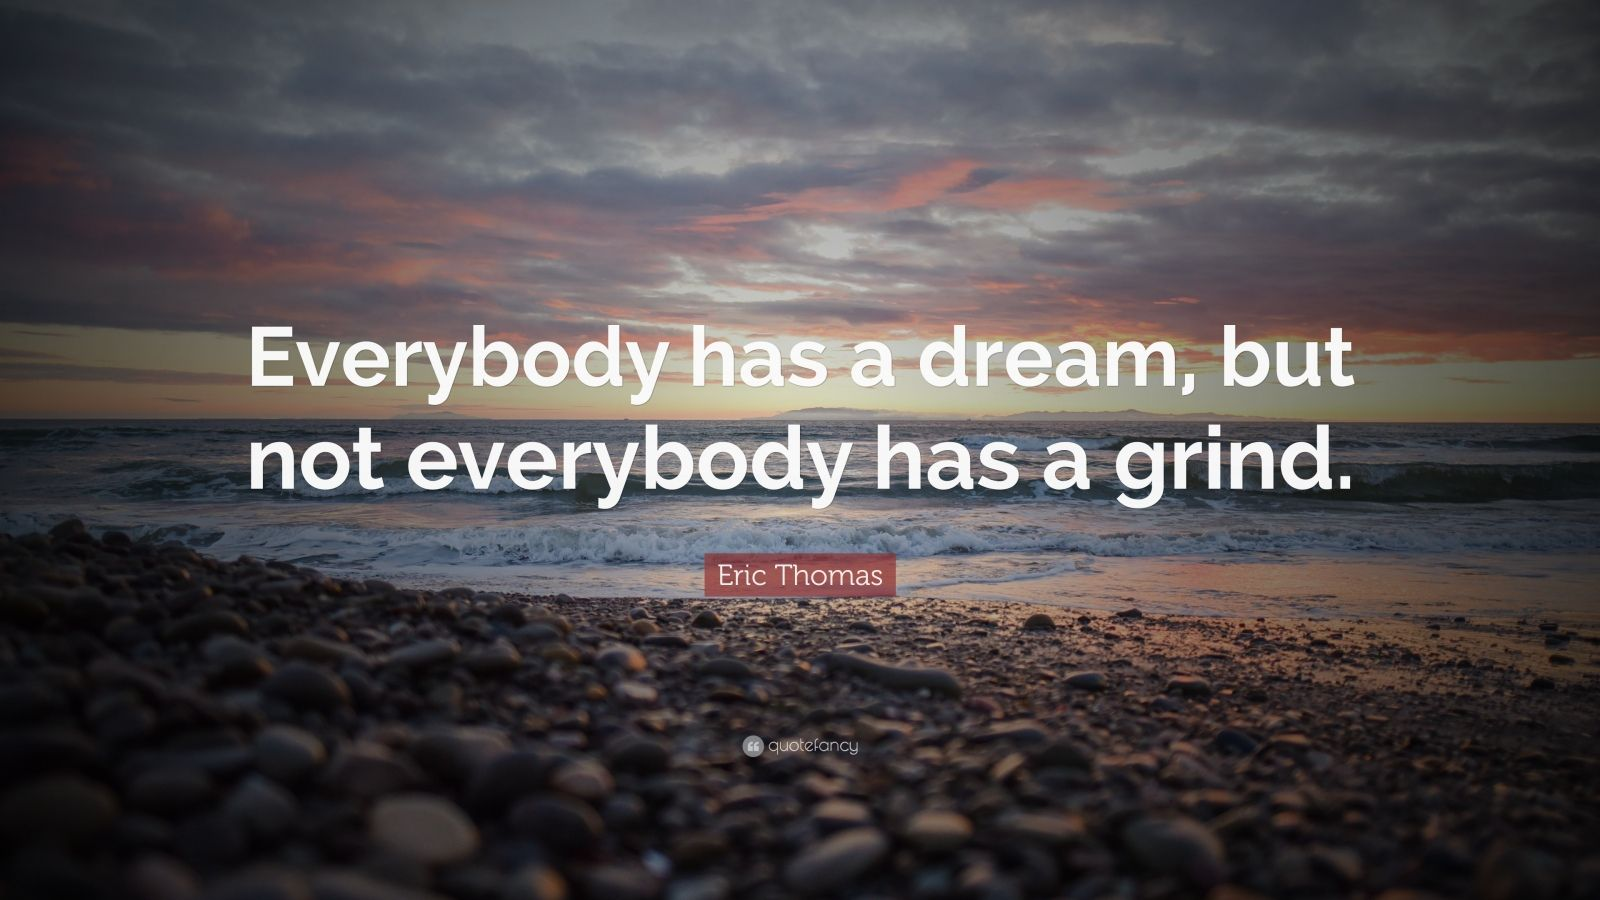 Eric Thomas Quotes 19 Wallpapers Quotefancy